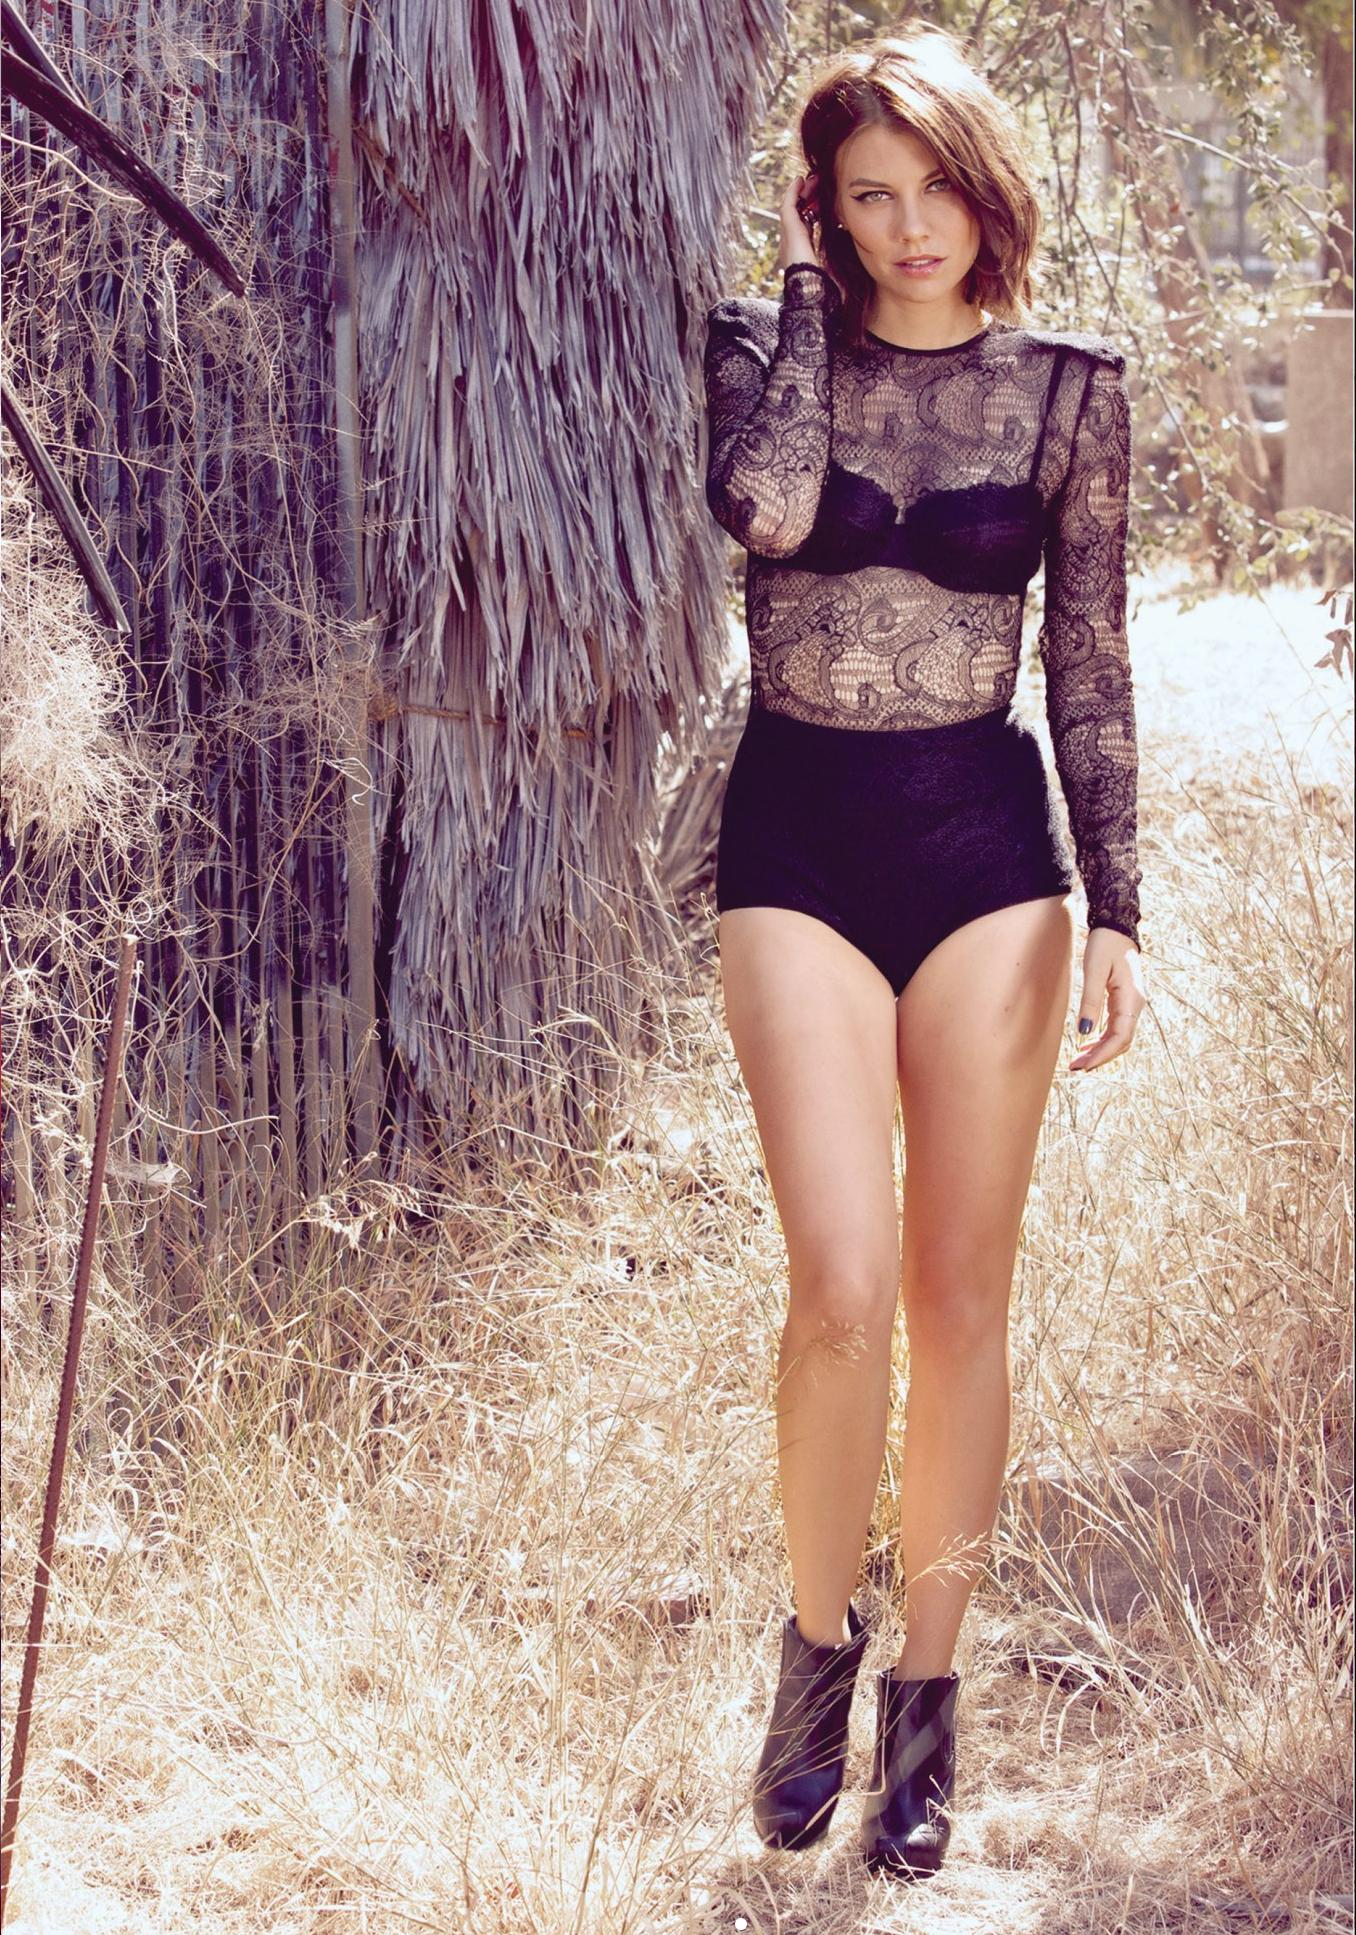 Lauren-Cohan-hot pics